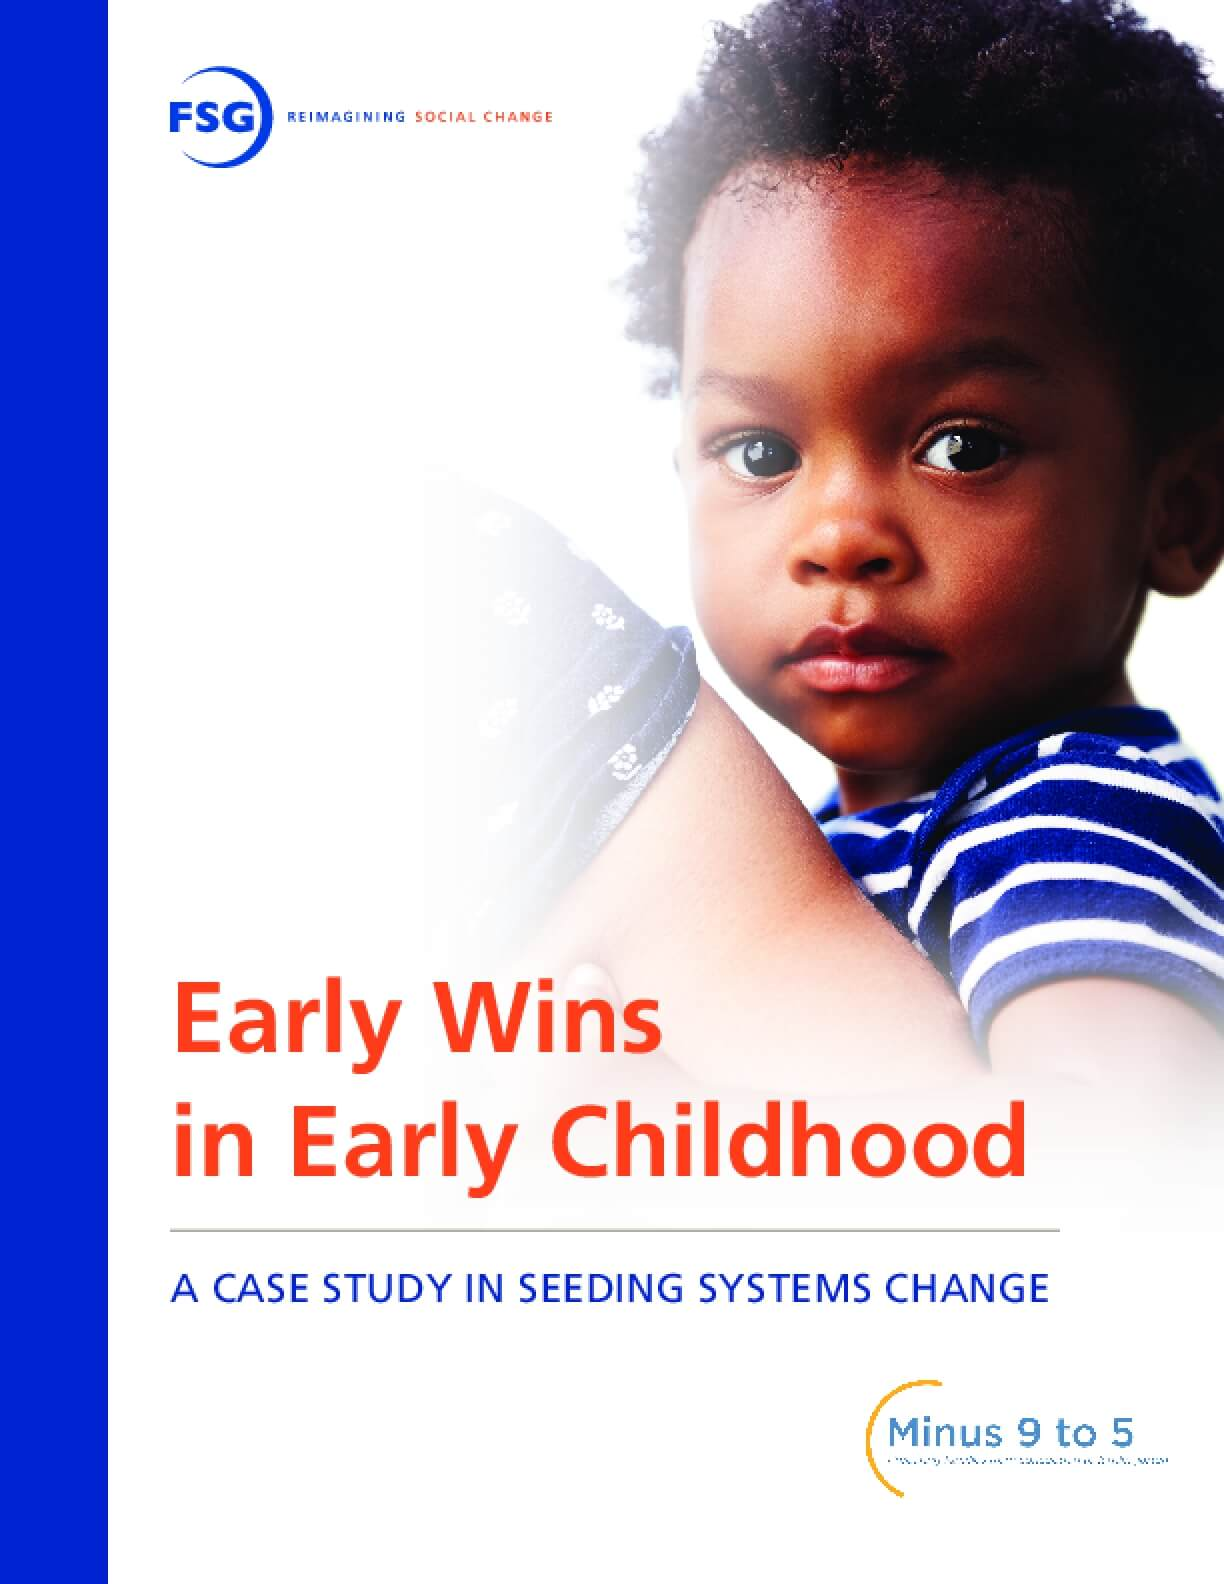 Early Wins in Early Childhood: A Case Study in Seeding Systems Change